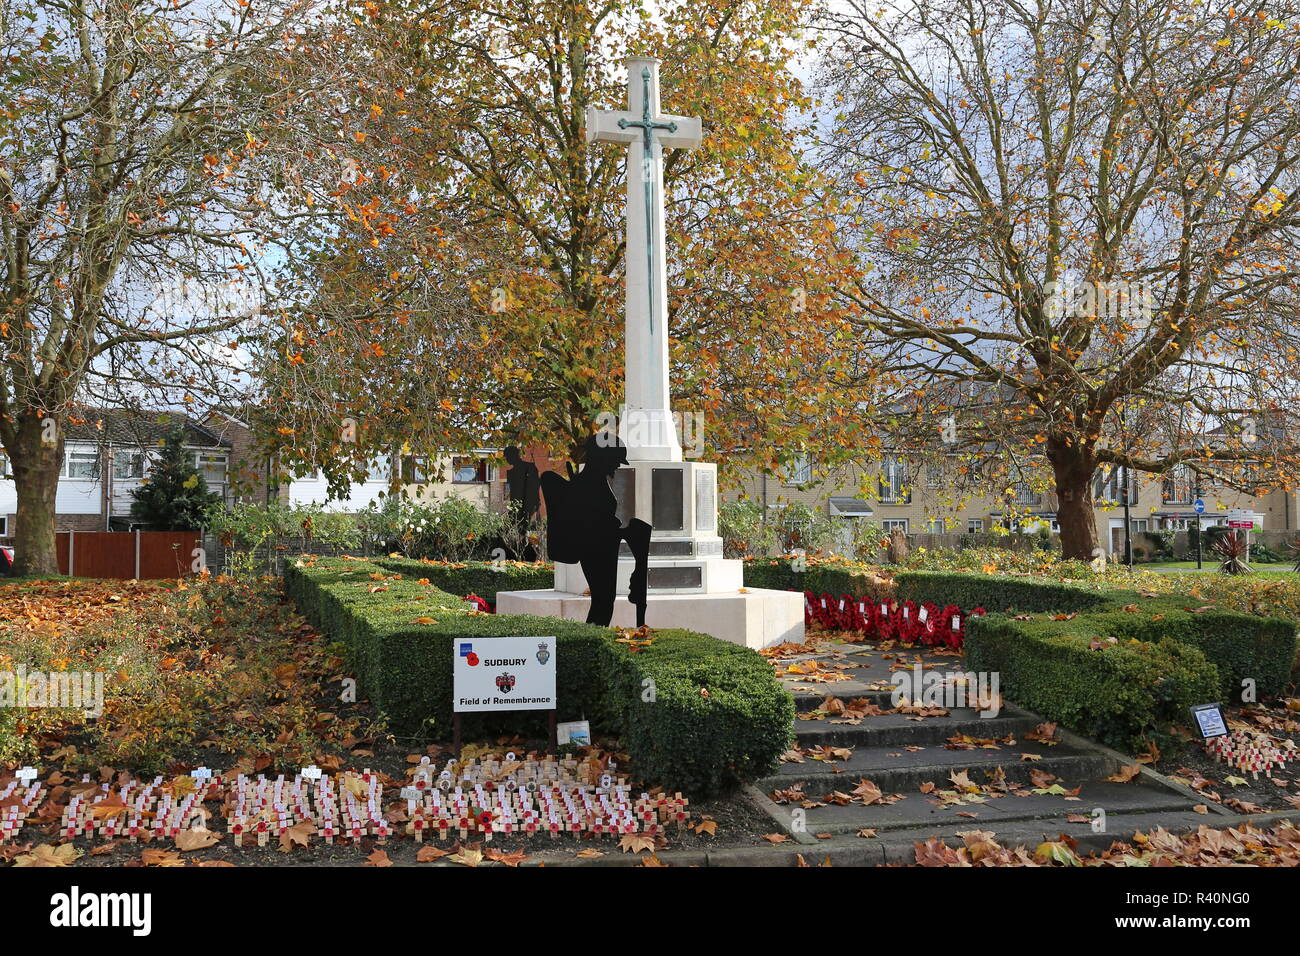 War Memorial, Gregory Street, Sudbury, Babergh district, Suffolk, East Anglia, England, Great Britain, United Kingdom, UK, Europe - Stock Image